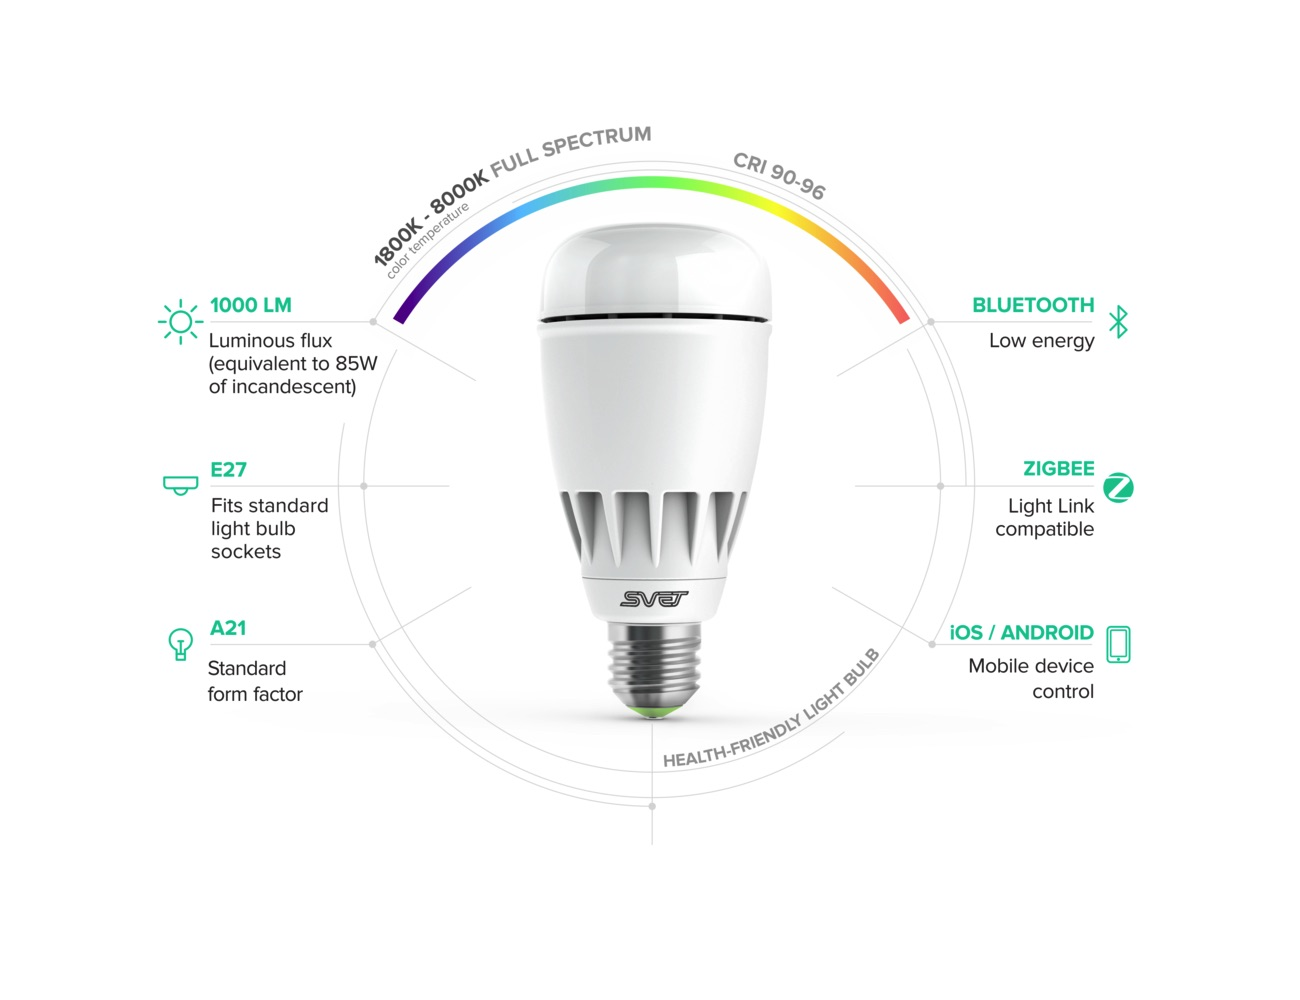 svet-the-health-friendly-light-bulb-94